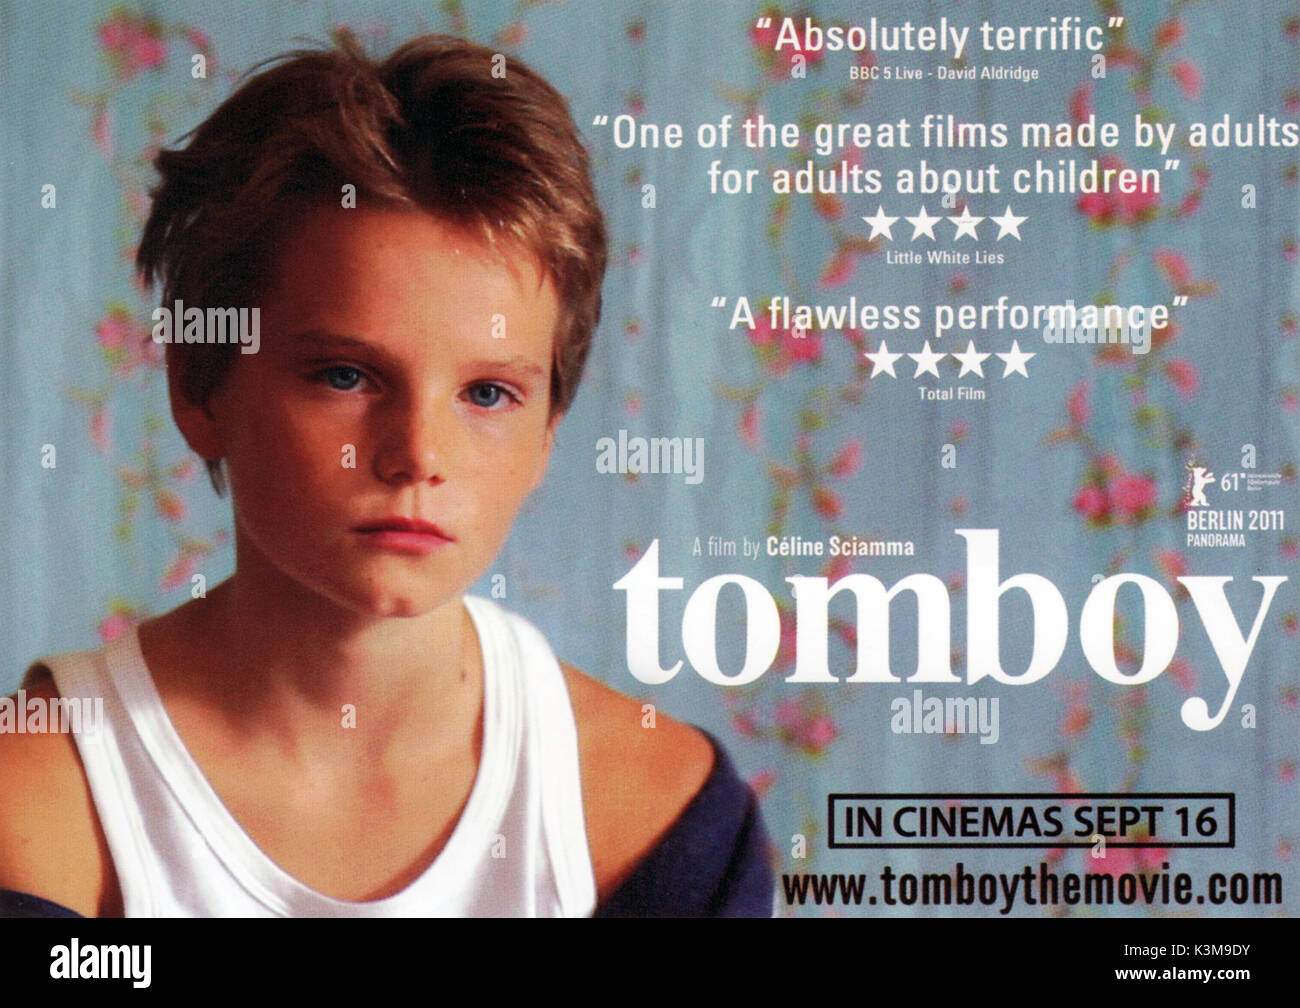 tomboy dating How to attract a tomboy making a connection with a tomboy may seem difficult, especially since what works with other girls may not work with them however, there are plenty of simple techniques you can use to woo your crush.